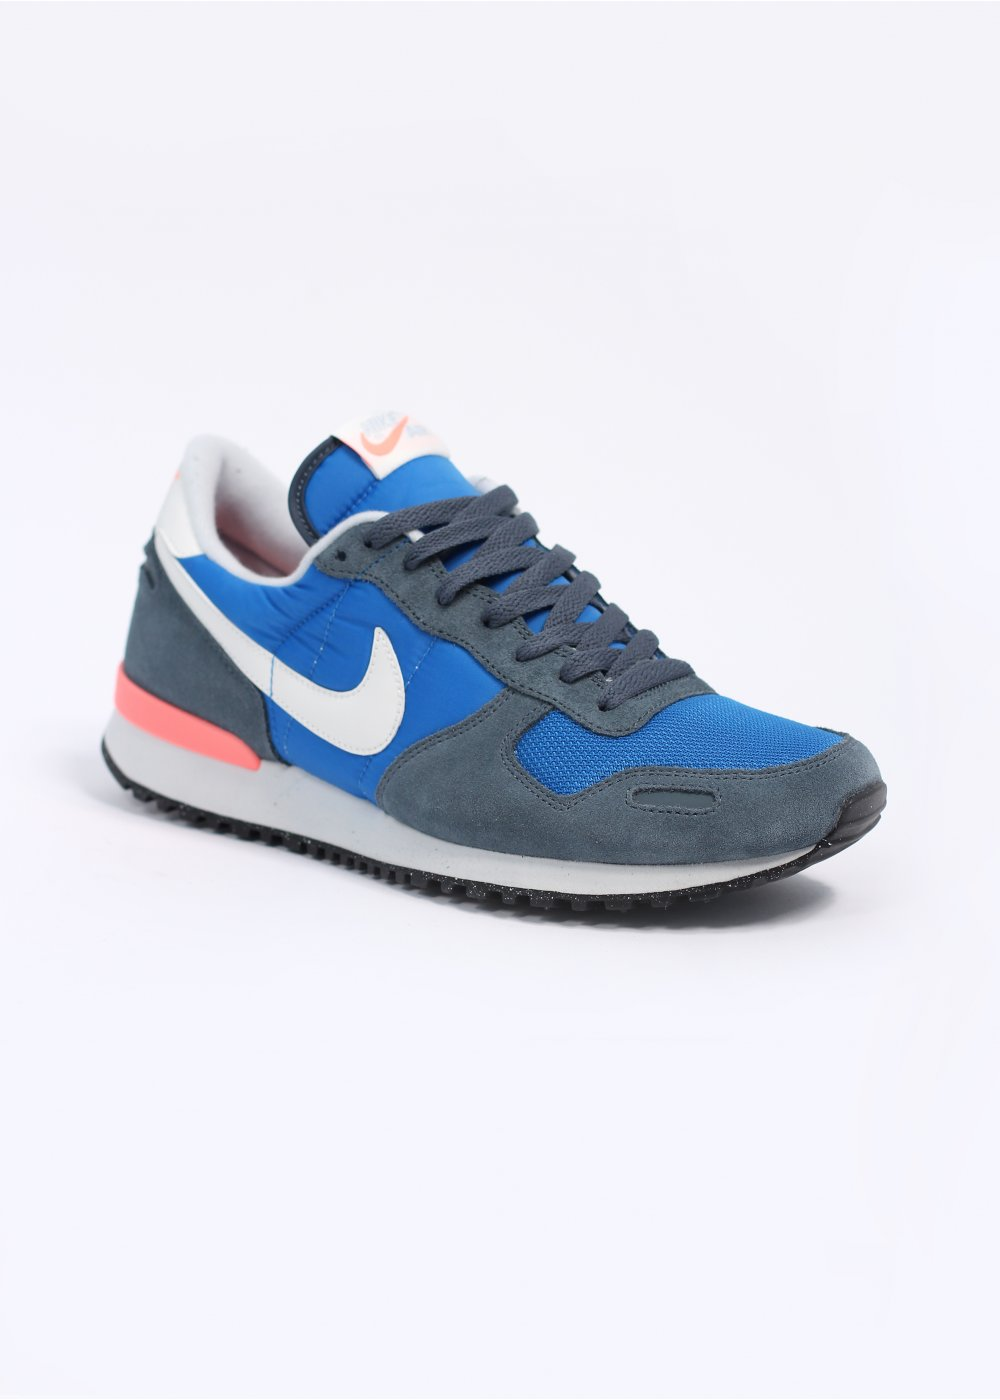 retro nike trainers Online Shopping for